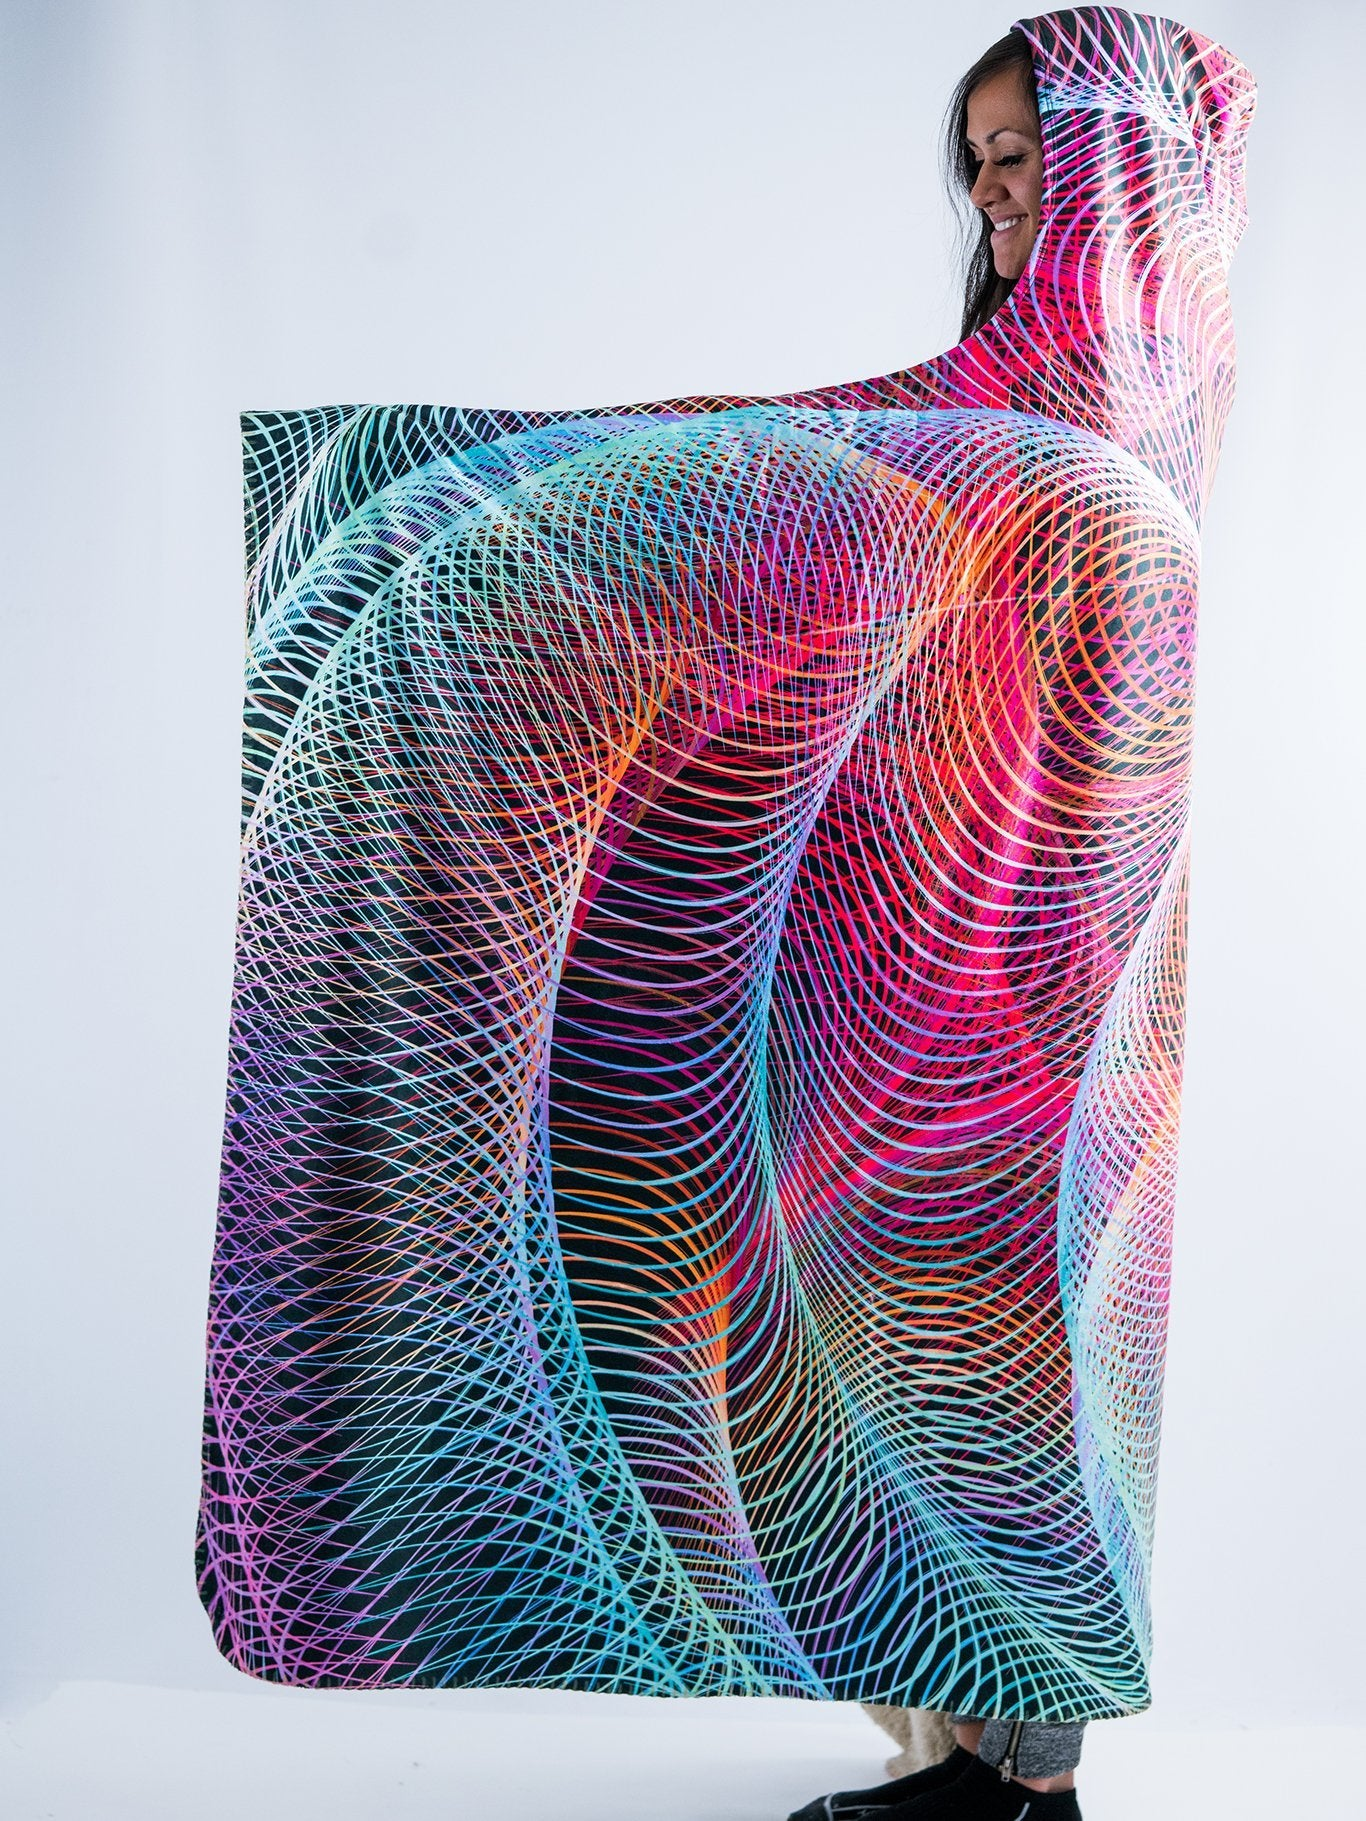 Hypnotic Vortex Hooded Blanket Hooded Blanket Electro Threads